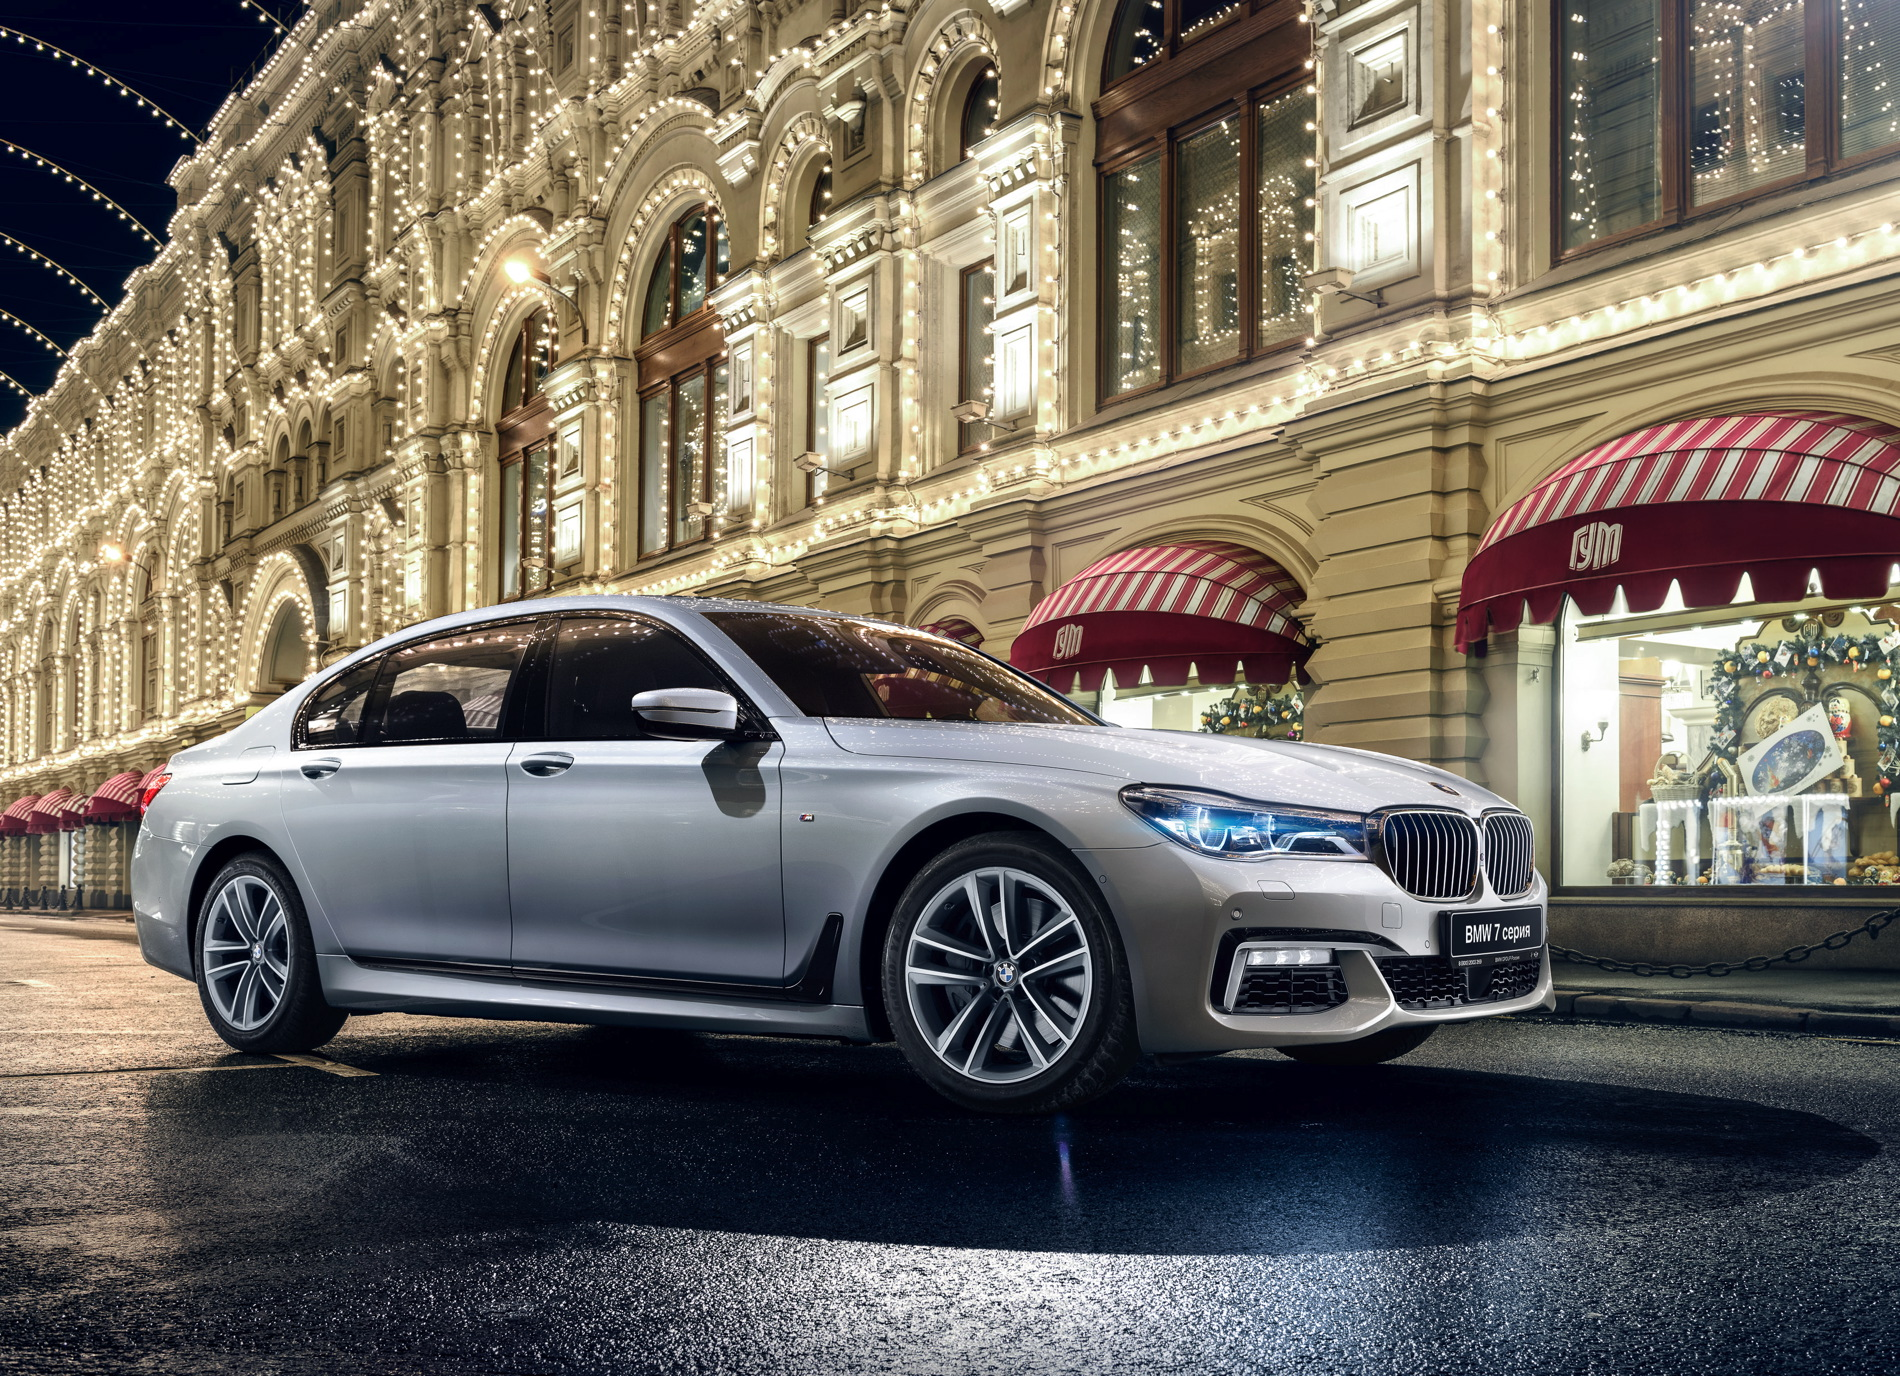 2016 BMW 7 Series luxury images 20